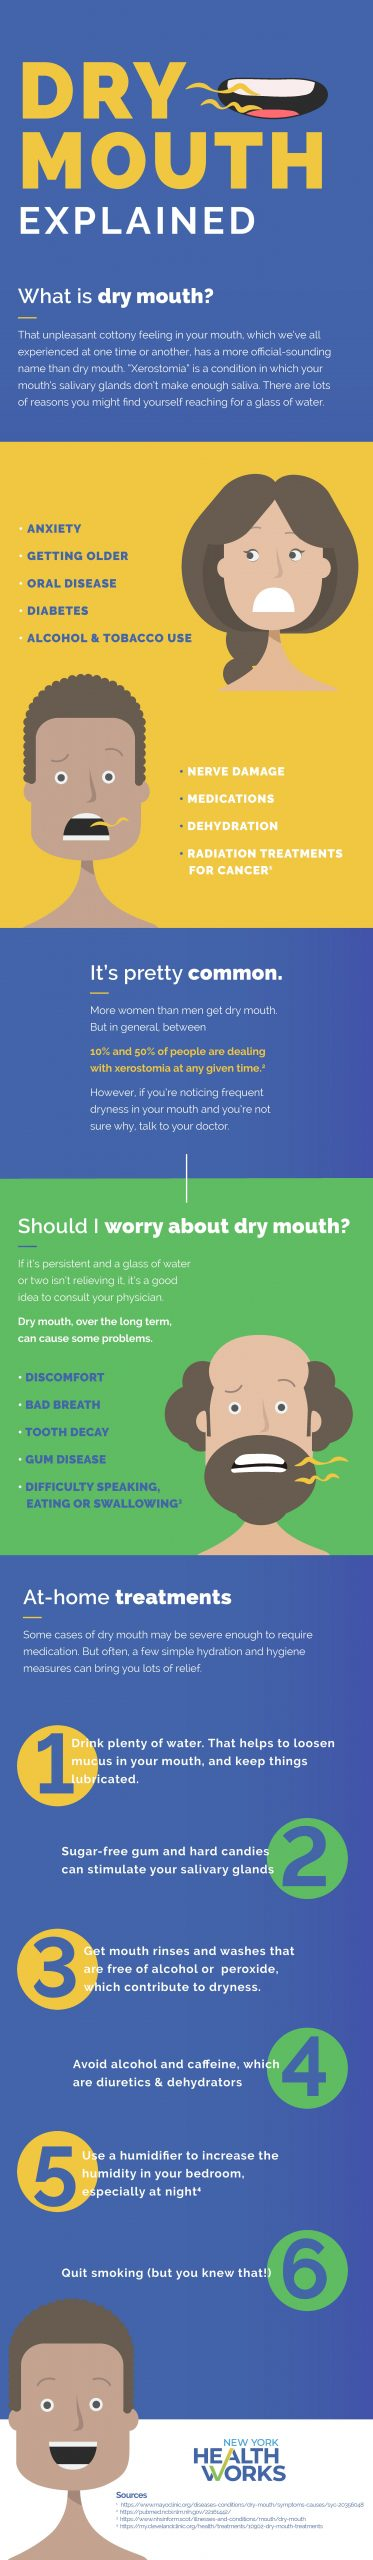 """Dry Mouth Explained"" Infographic"